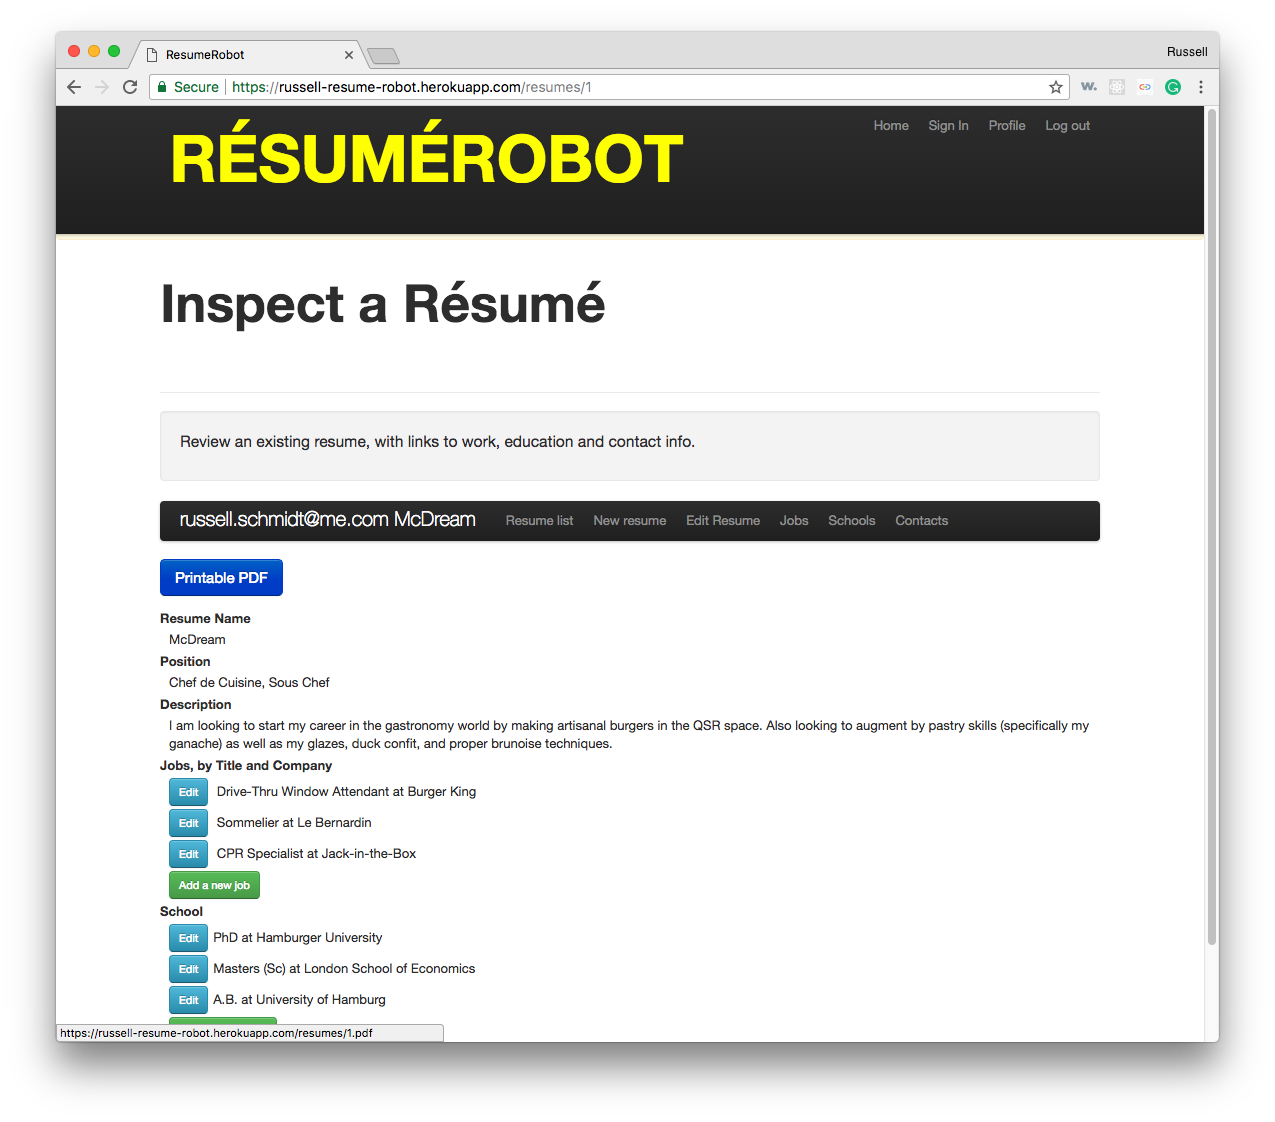 Resume Robot Edit Screen